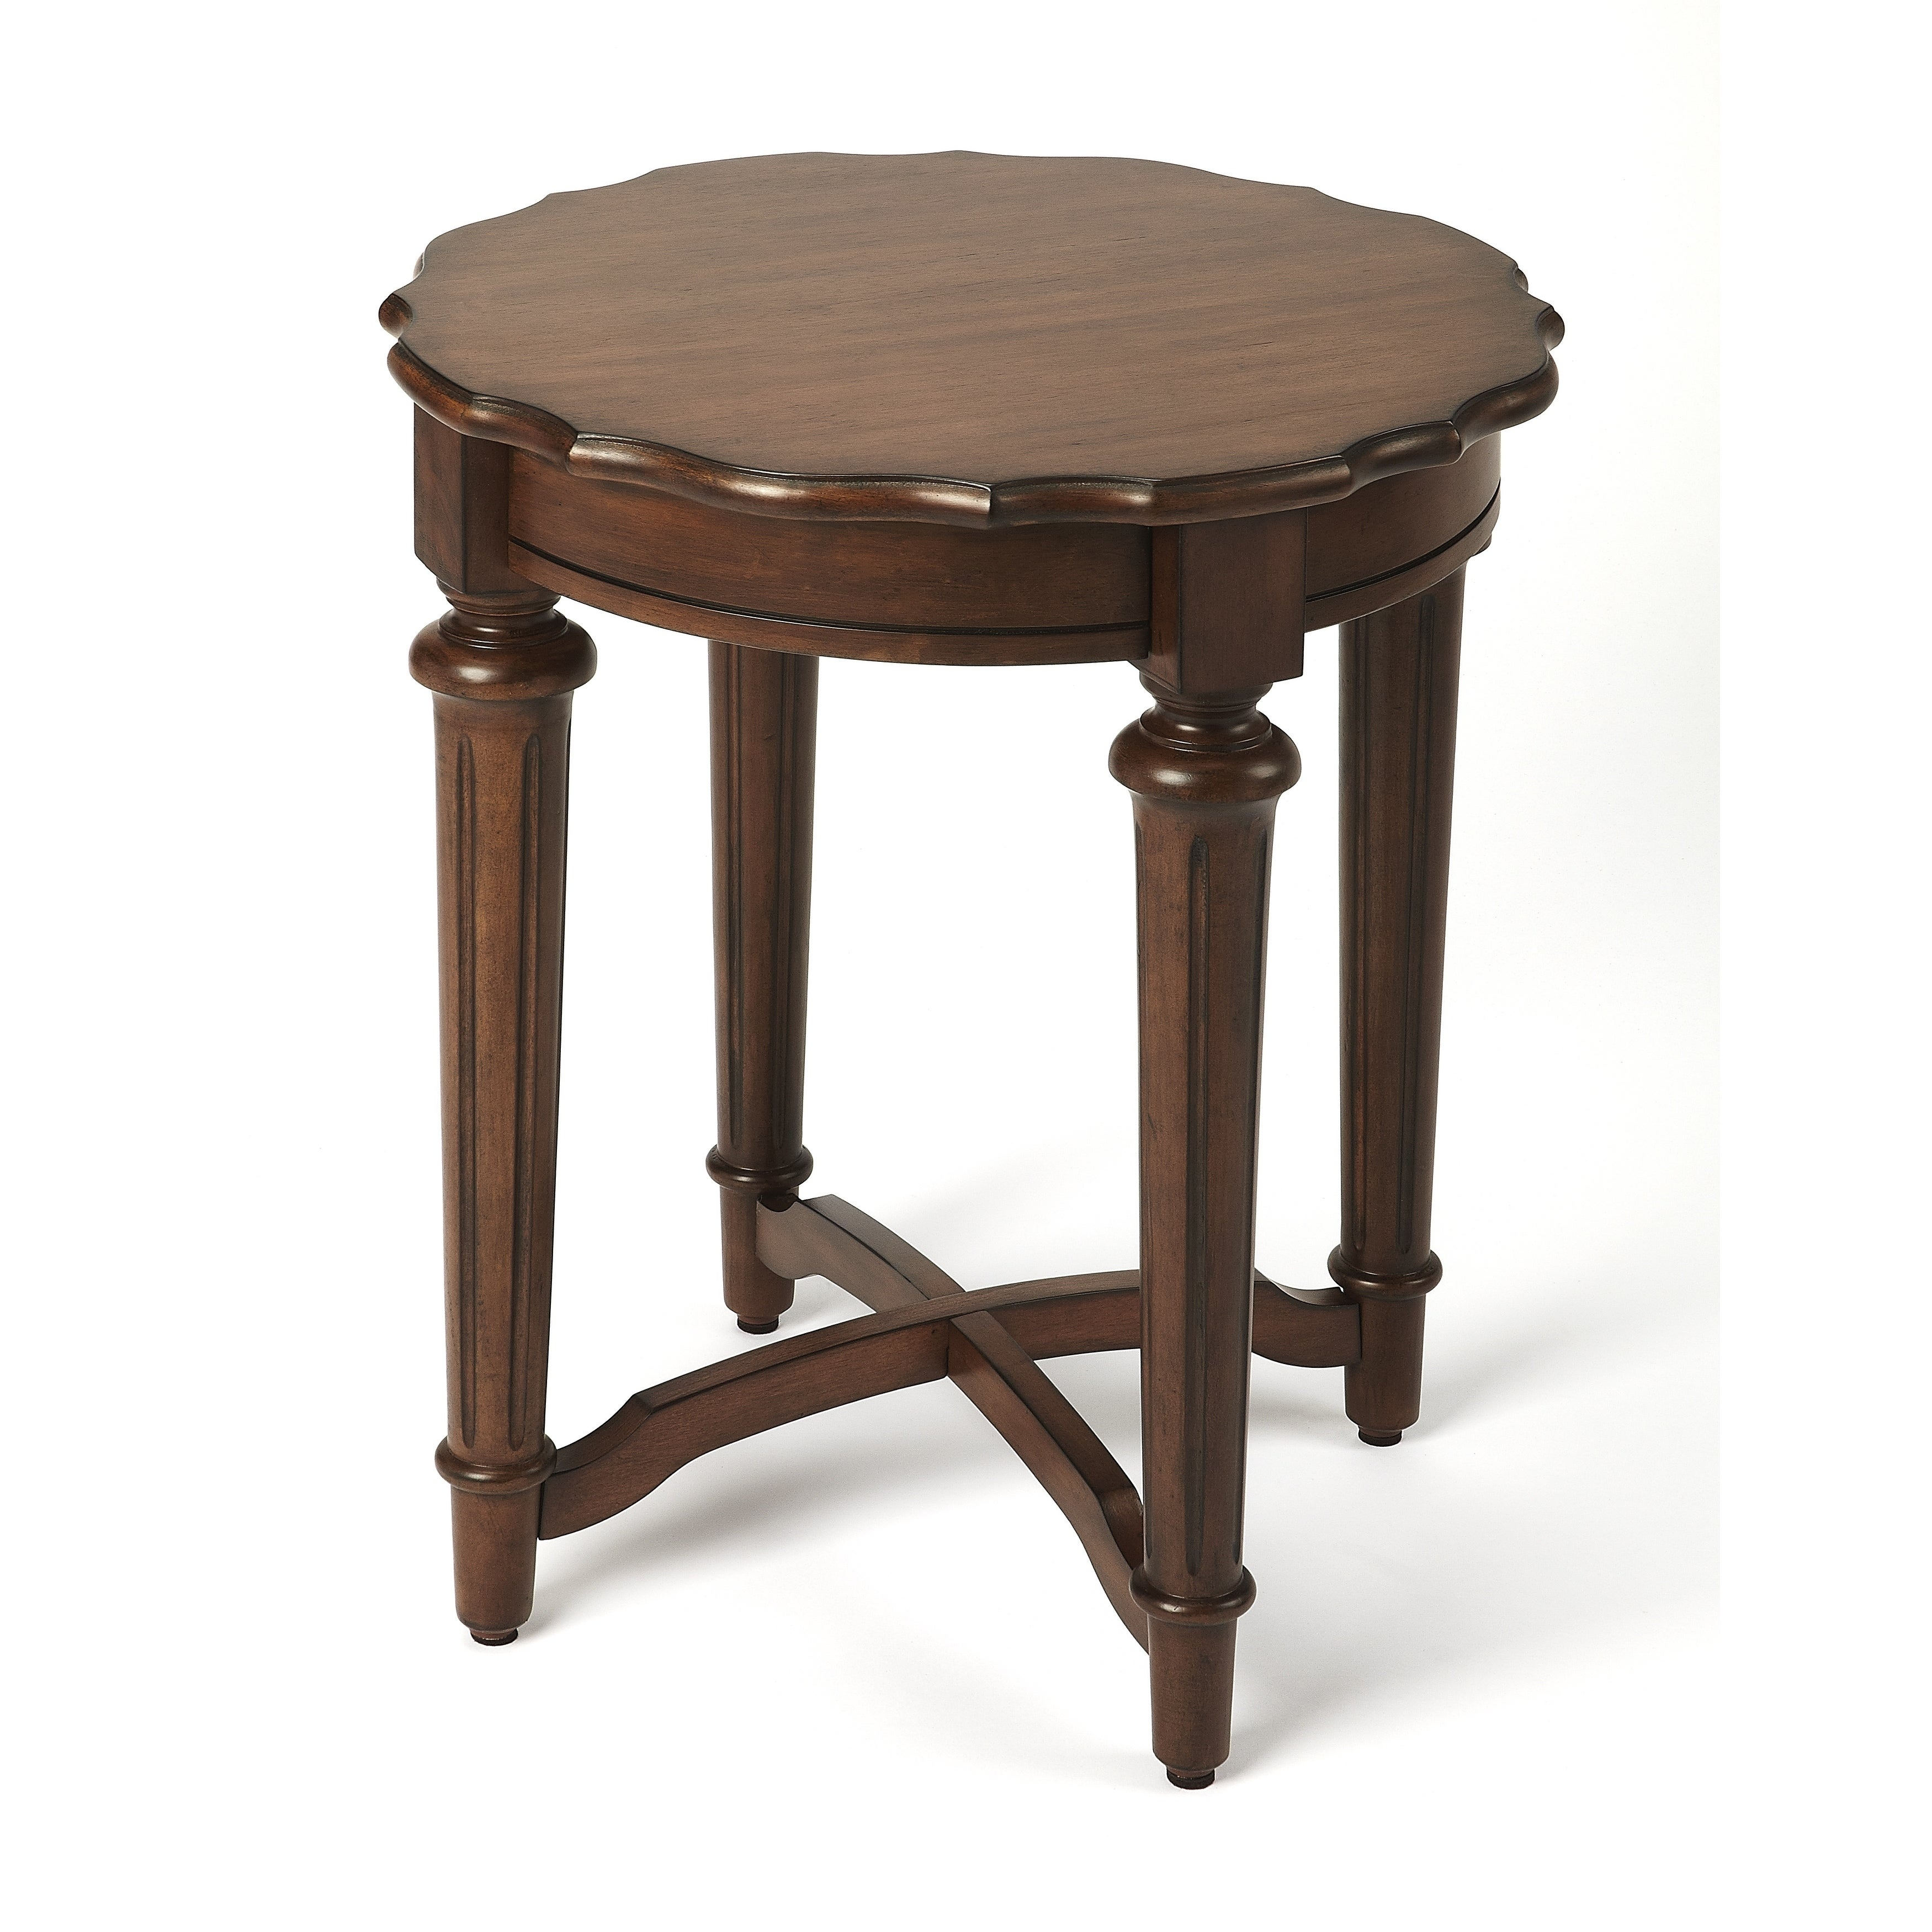 Shop butler kendrick cocoa end table on sale free shipping today overstock com 19267196